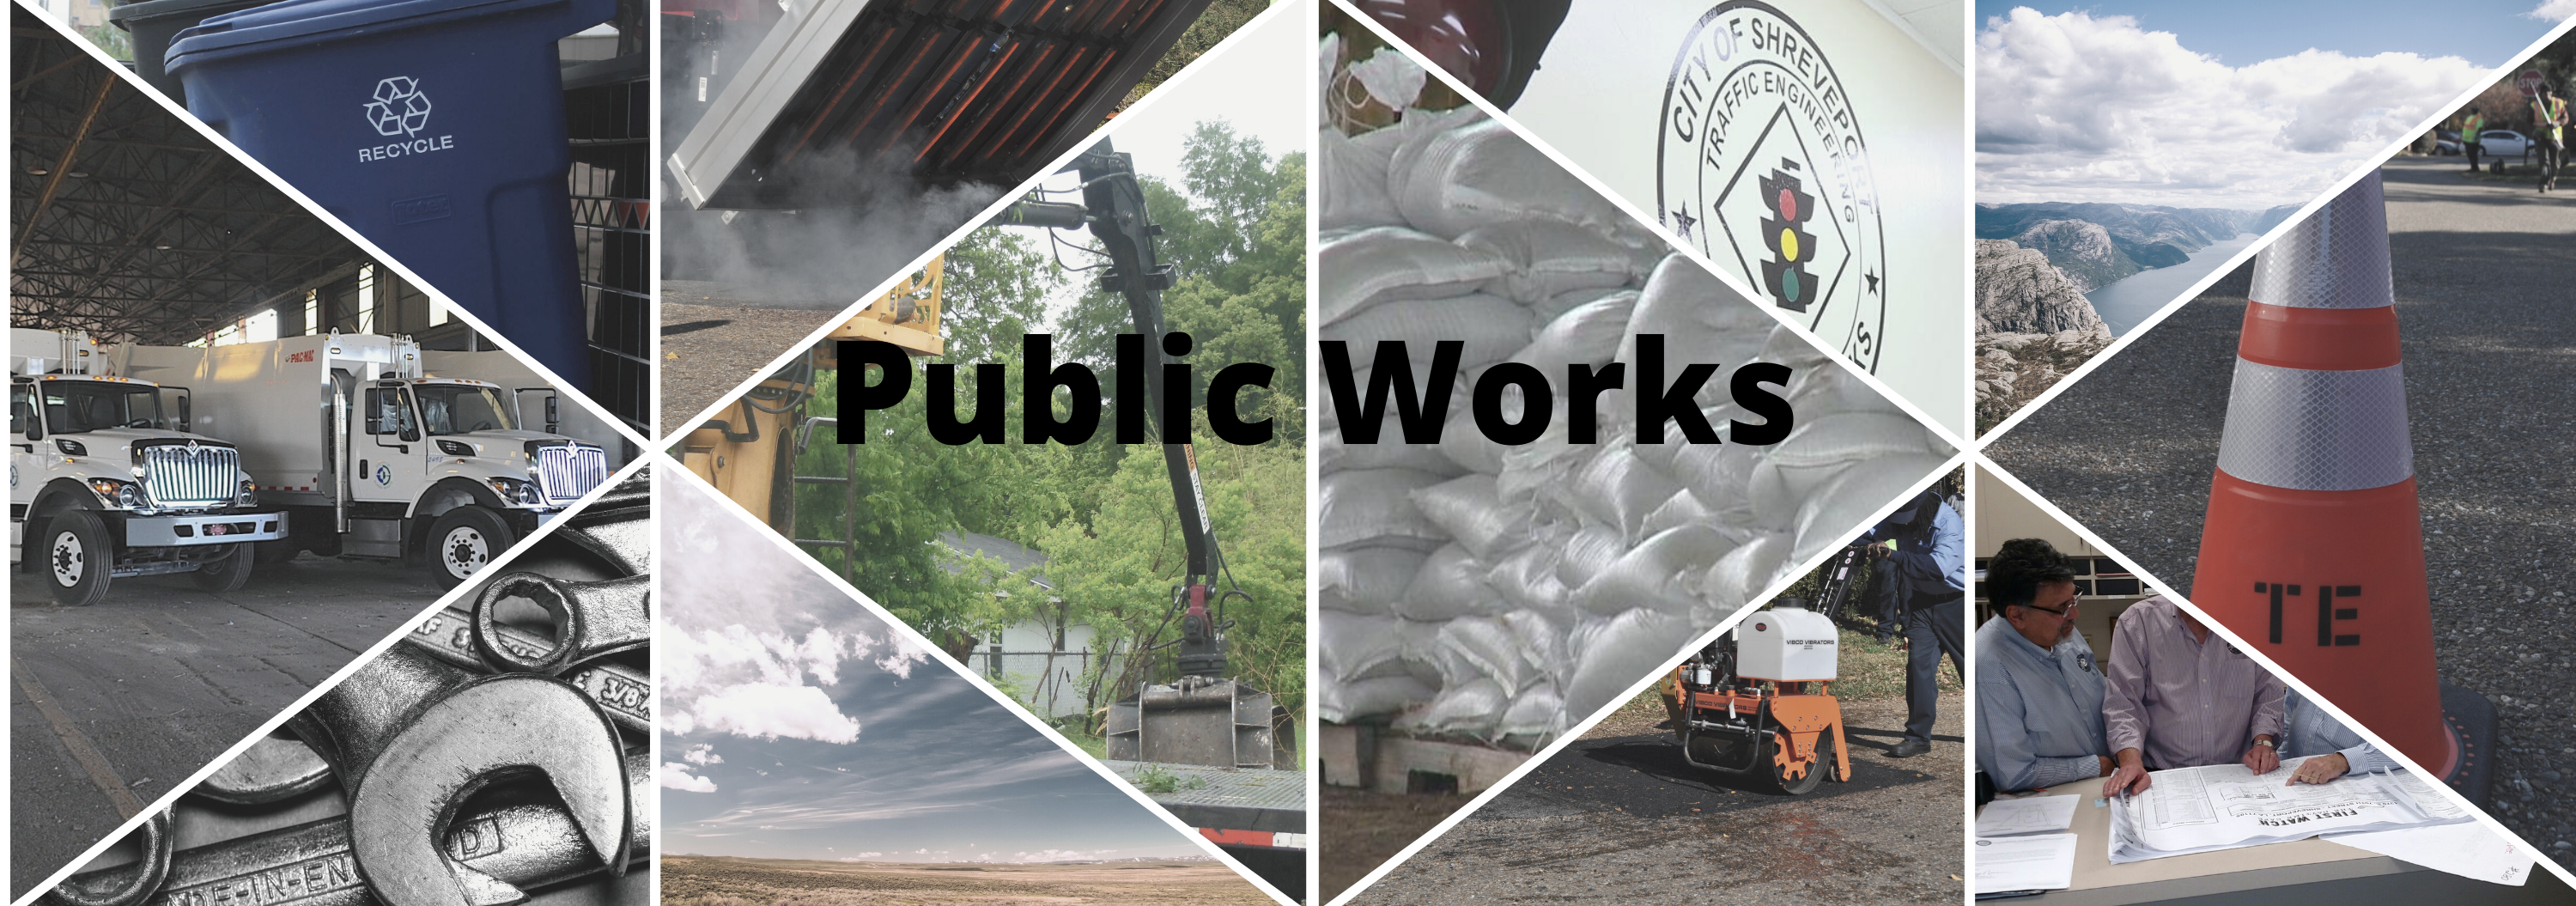 Public Works Web Page Banner